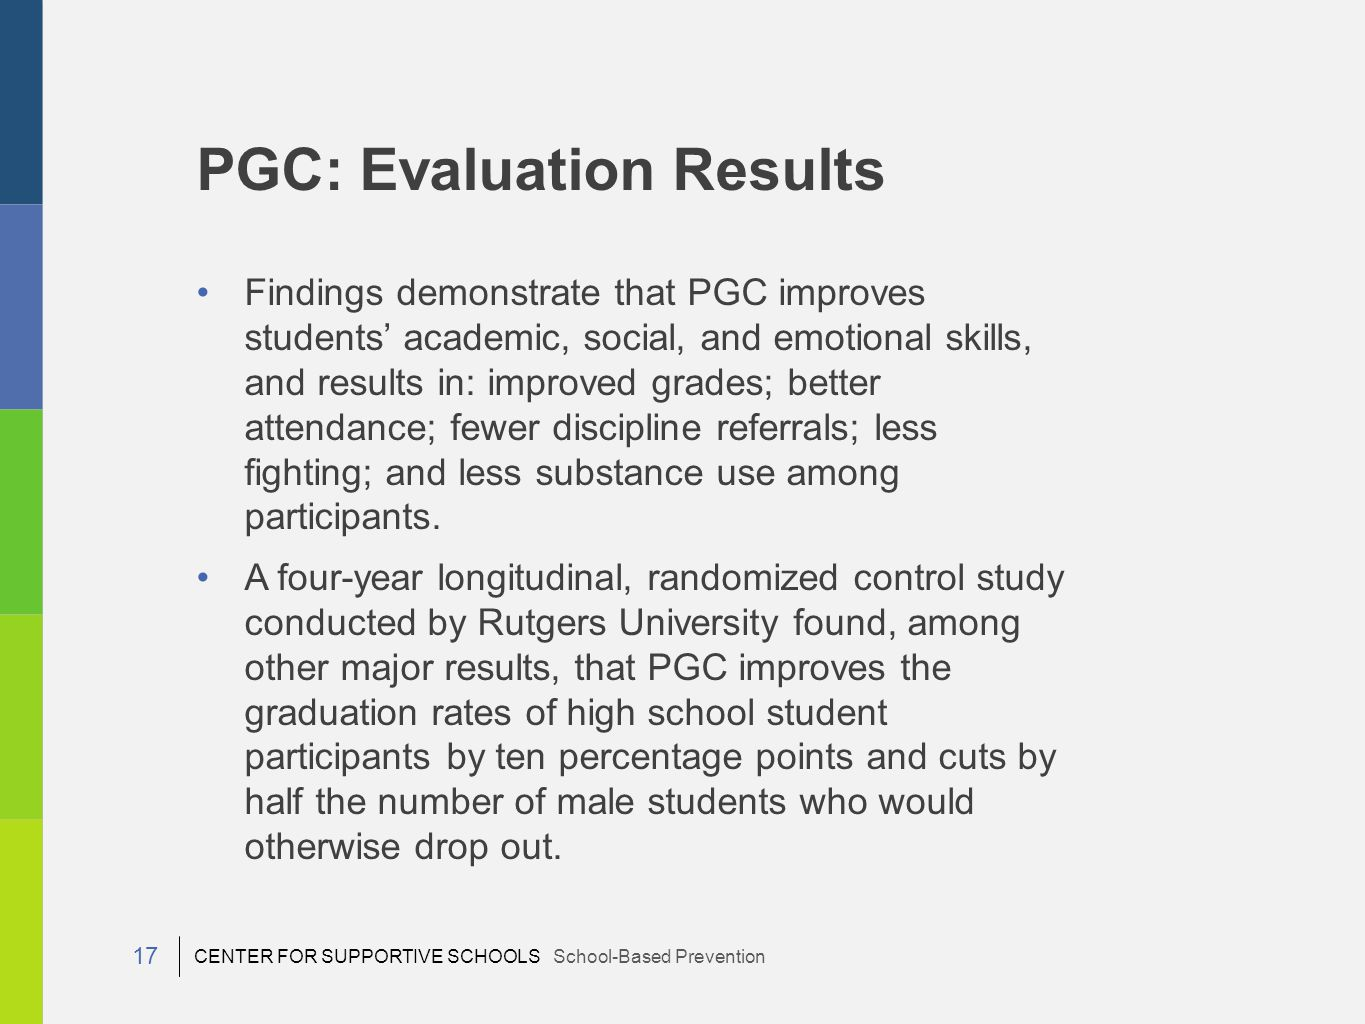 CENTER FOR SUPPORTIVE SCHOOLS School-Based Prevention 17 Findings demonstrate that PGC improves students' academic, social, and emotional skills, and results in: improved grades; better attendance; fewer discipline referrals; less fighting; and less substance use among participants.